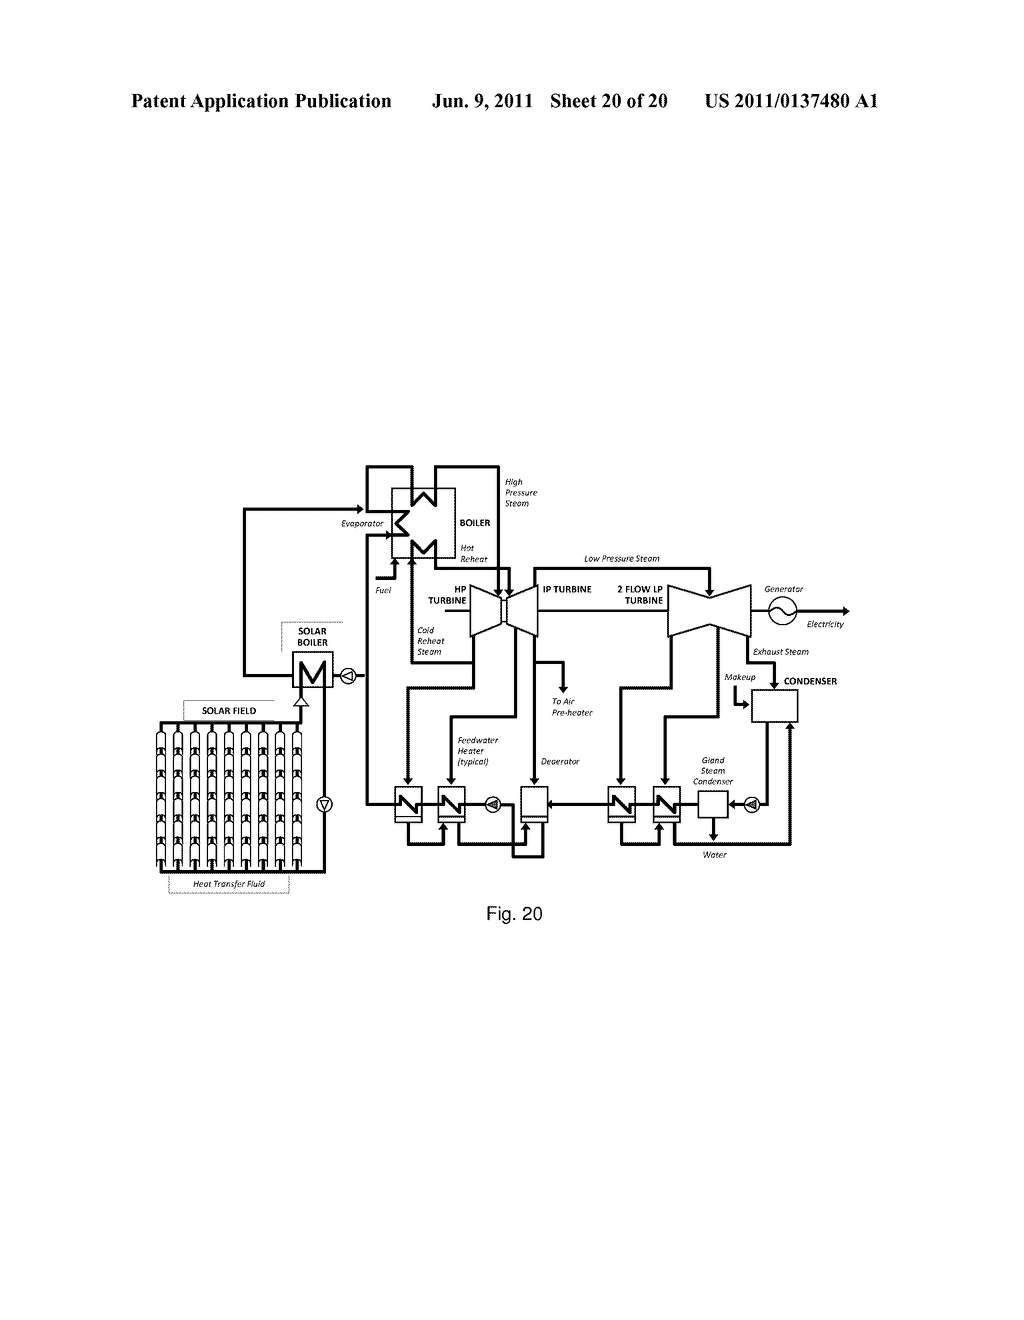 Supplemental Solar Superheated Steam In A Concentrated Power Plant Boiler Schematic Enabled Diagram And Image 21